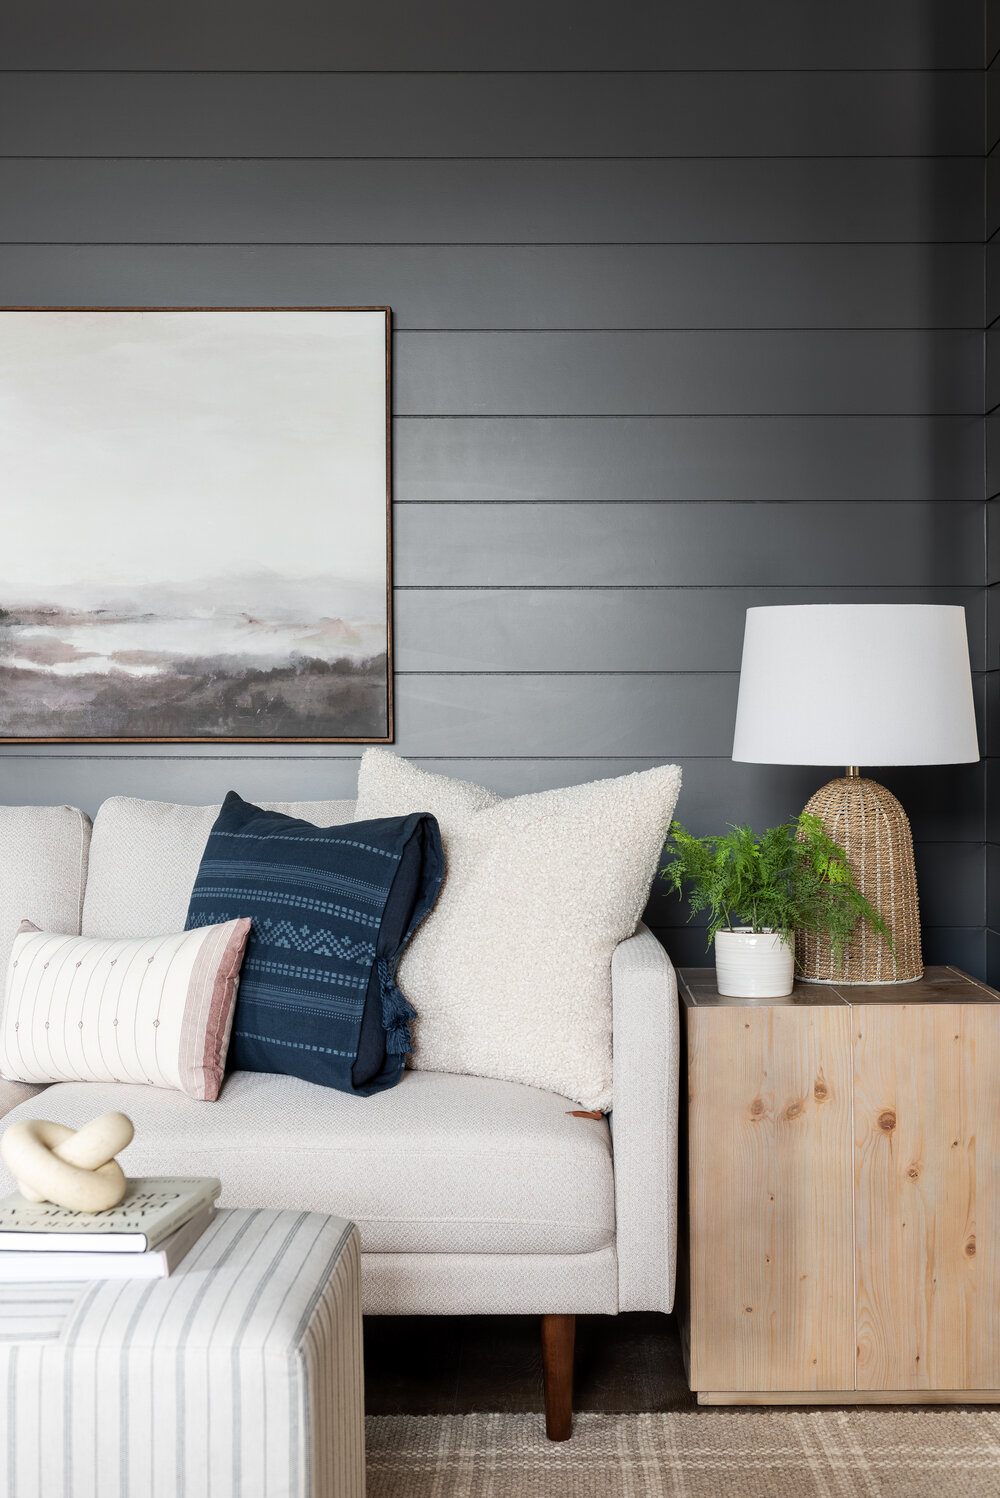 5 Tips For Transitioning Your Home Into Fall